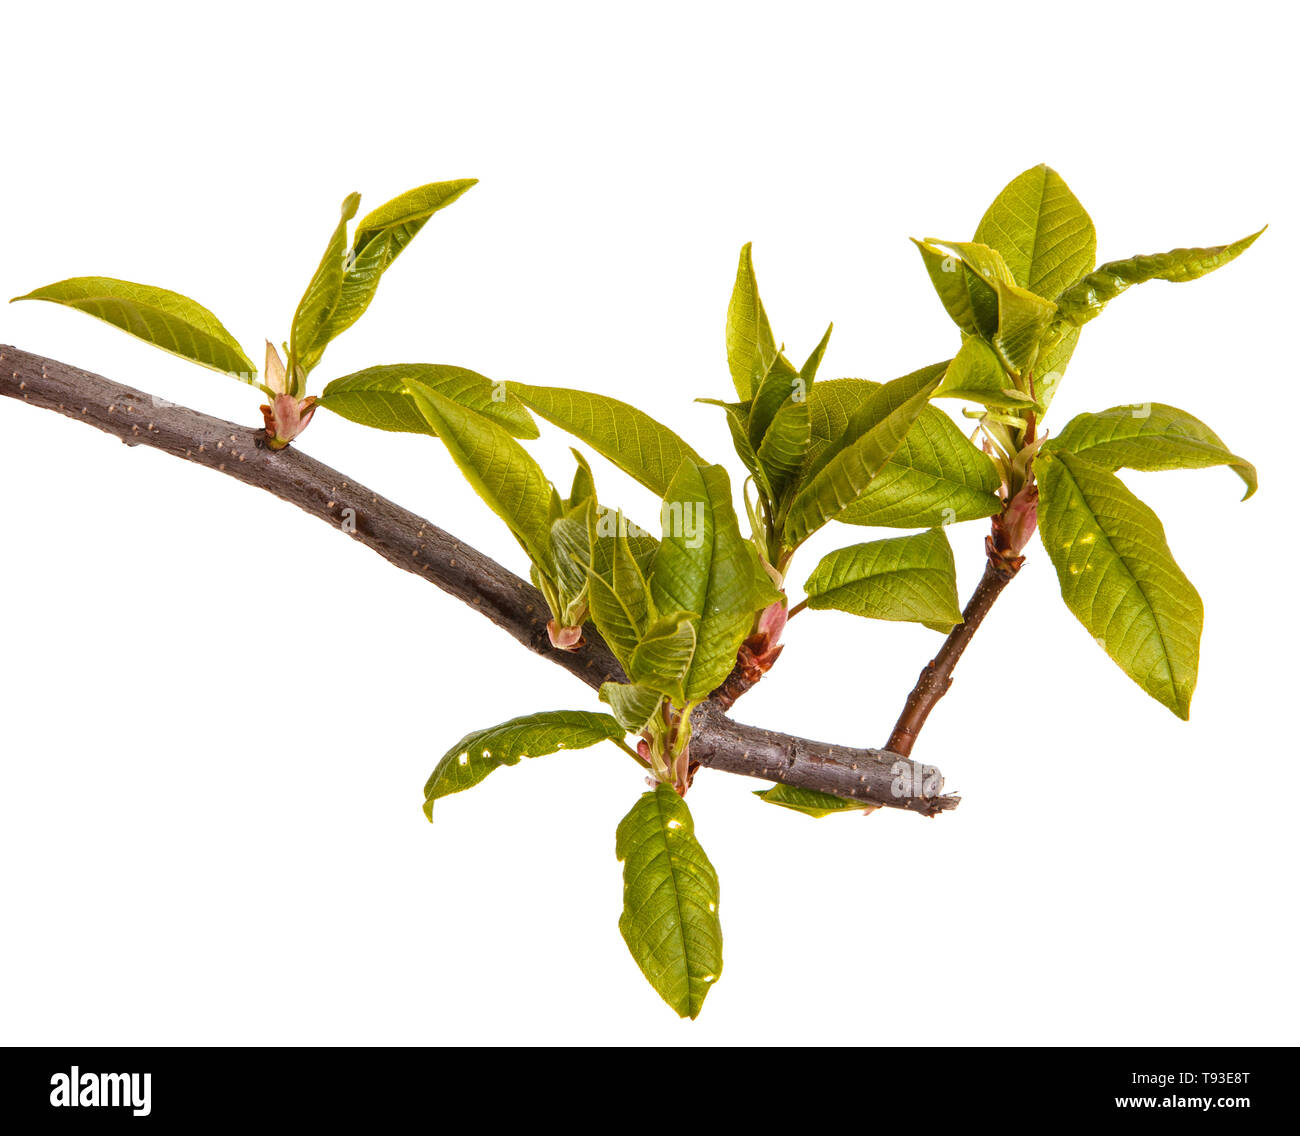 A Bird Cherry Branch With Young Green Leaves Isolated On